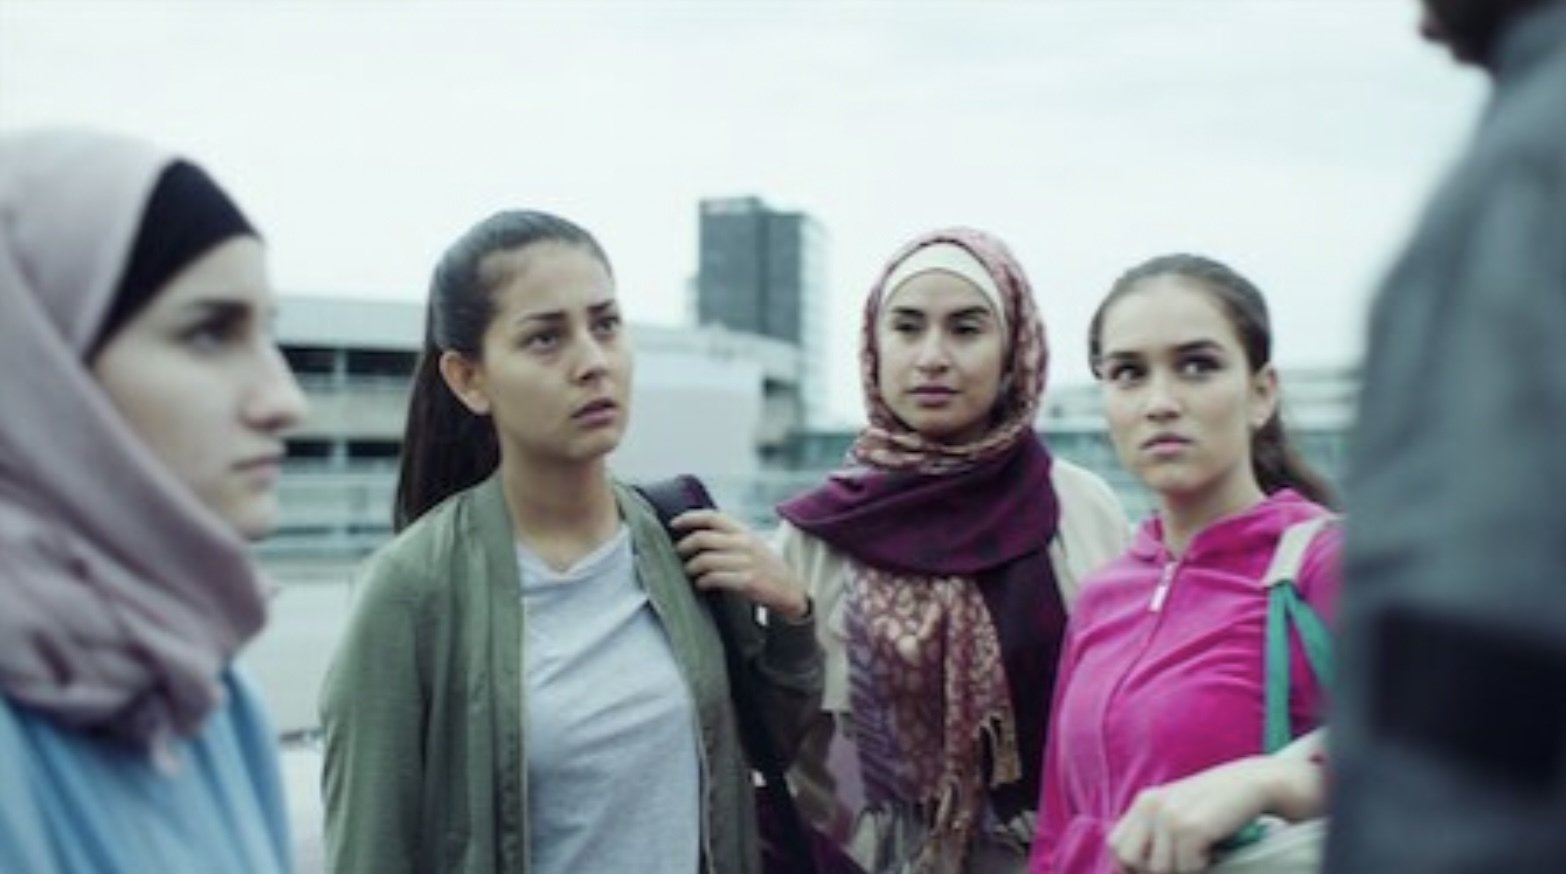 """A screengrab from the Swedish TV series, """"Caliphate,"""" that revolves around themes such as """"extremism,"""" terrorism and women's rights."""